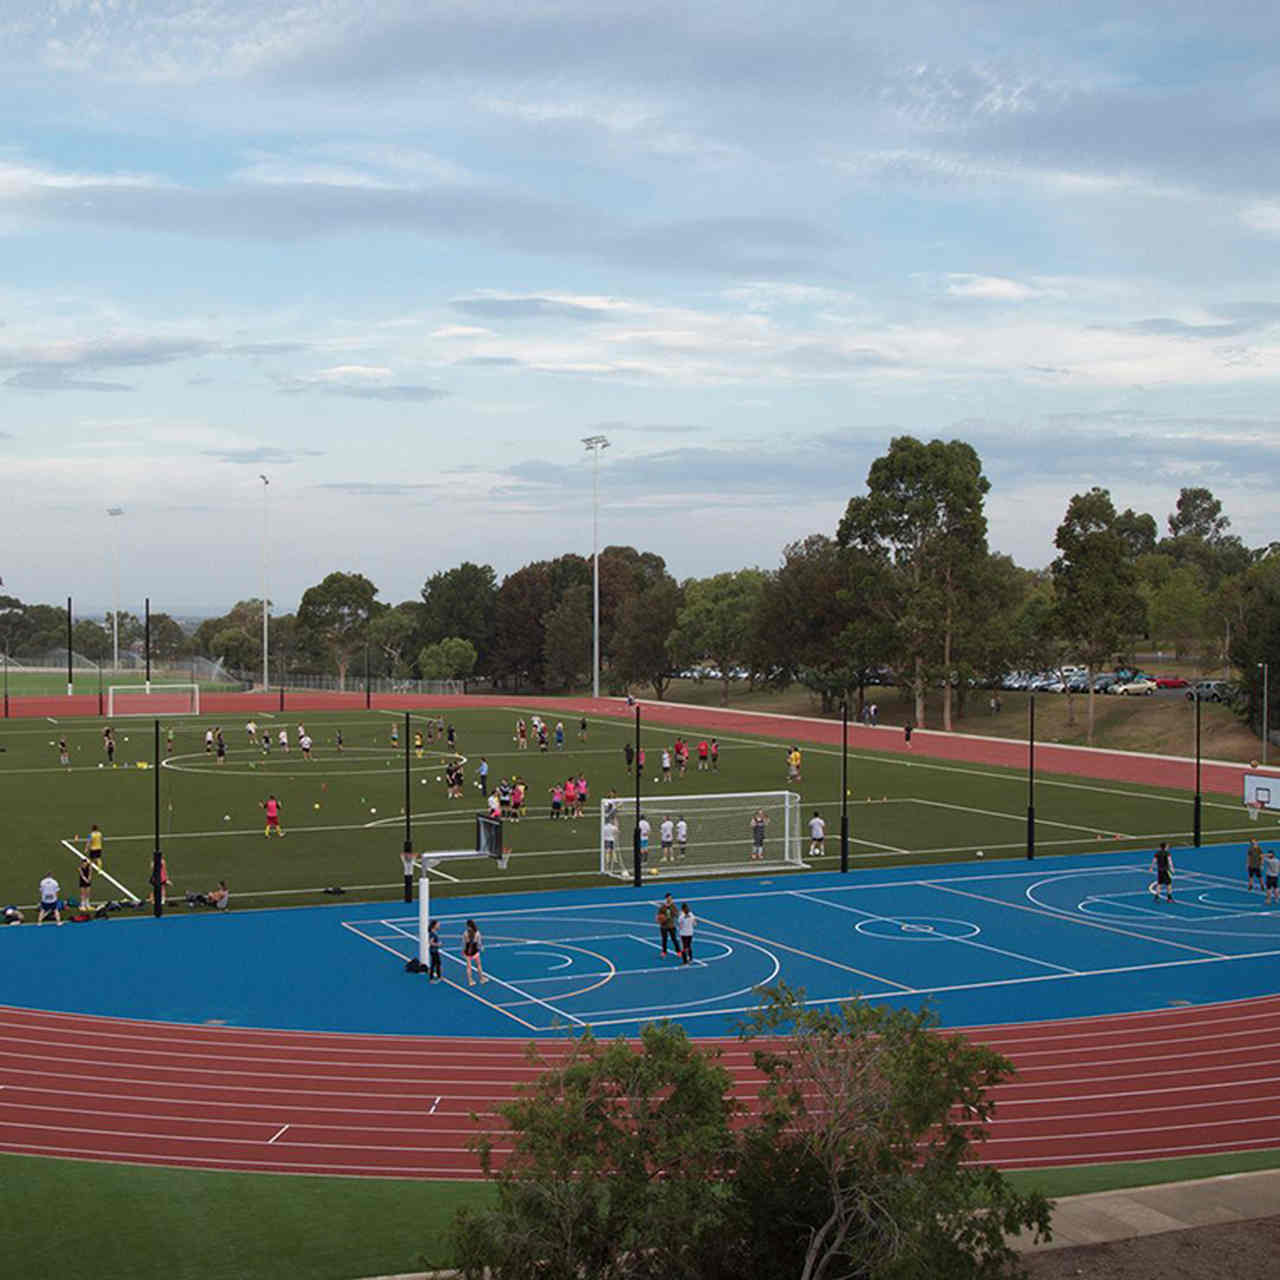 Track and field athletics, Sport venue, Sports, Athletics, Recreation, Grass, Running